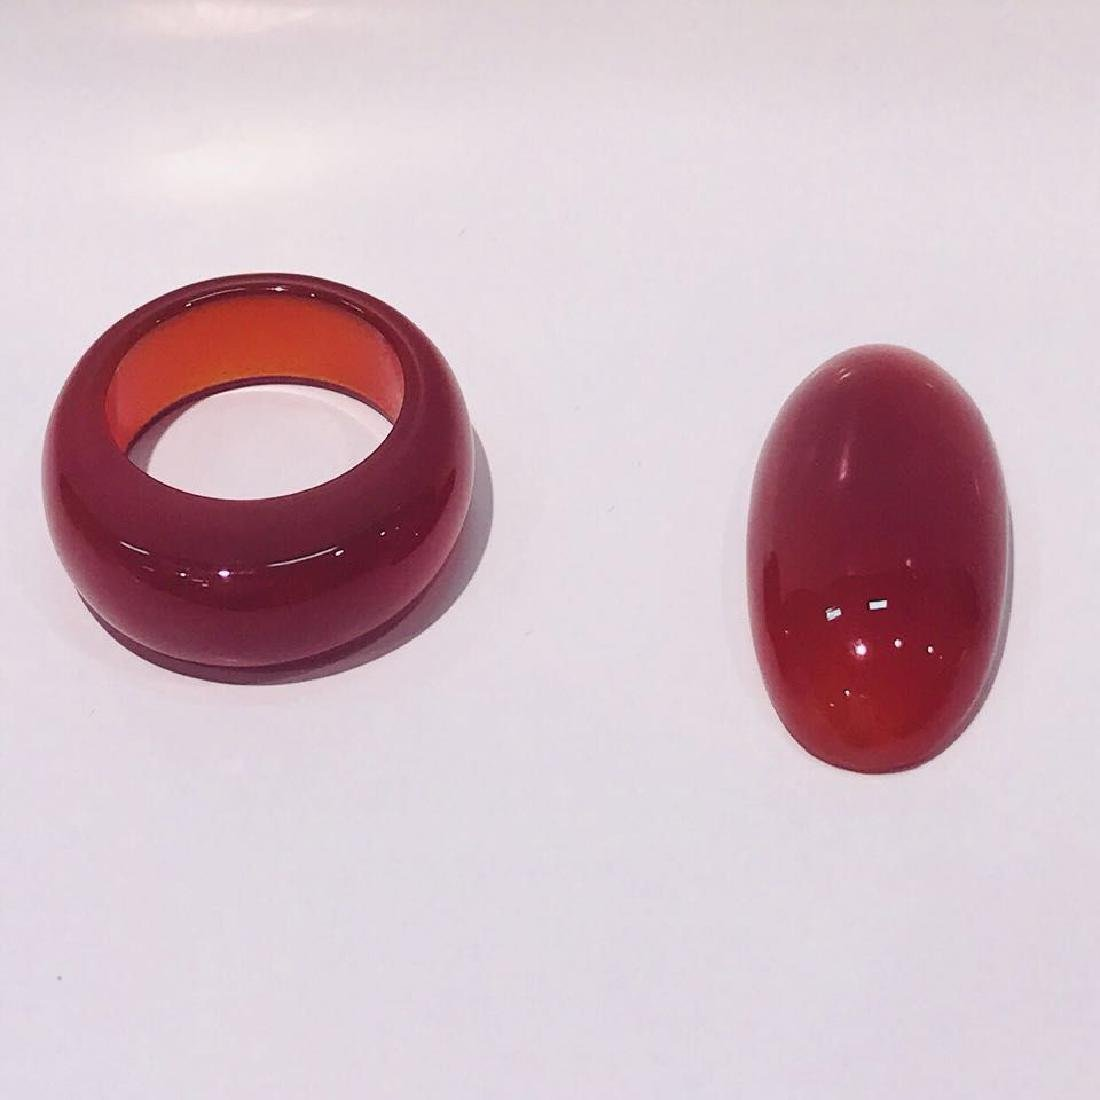 Agate ring and Agate egg piece